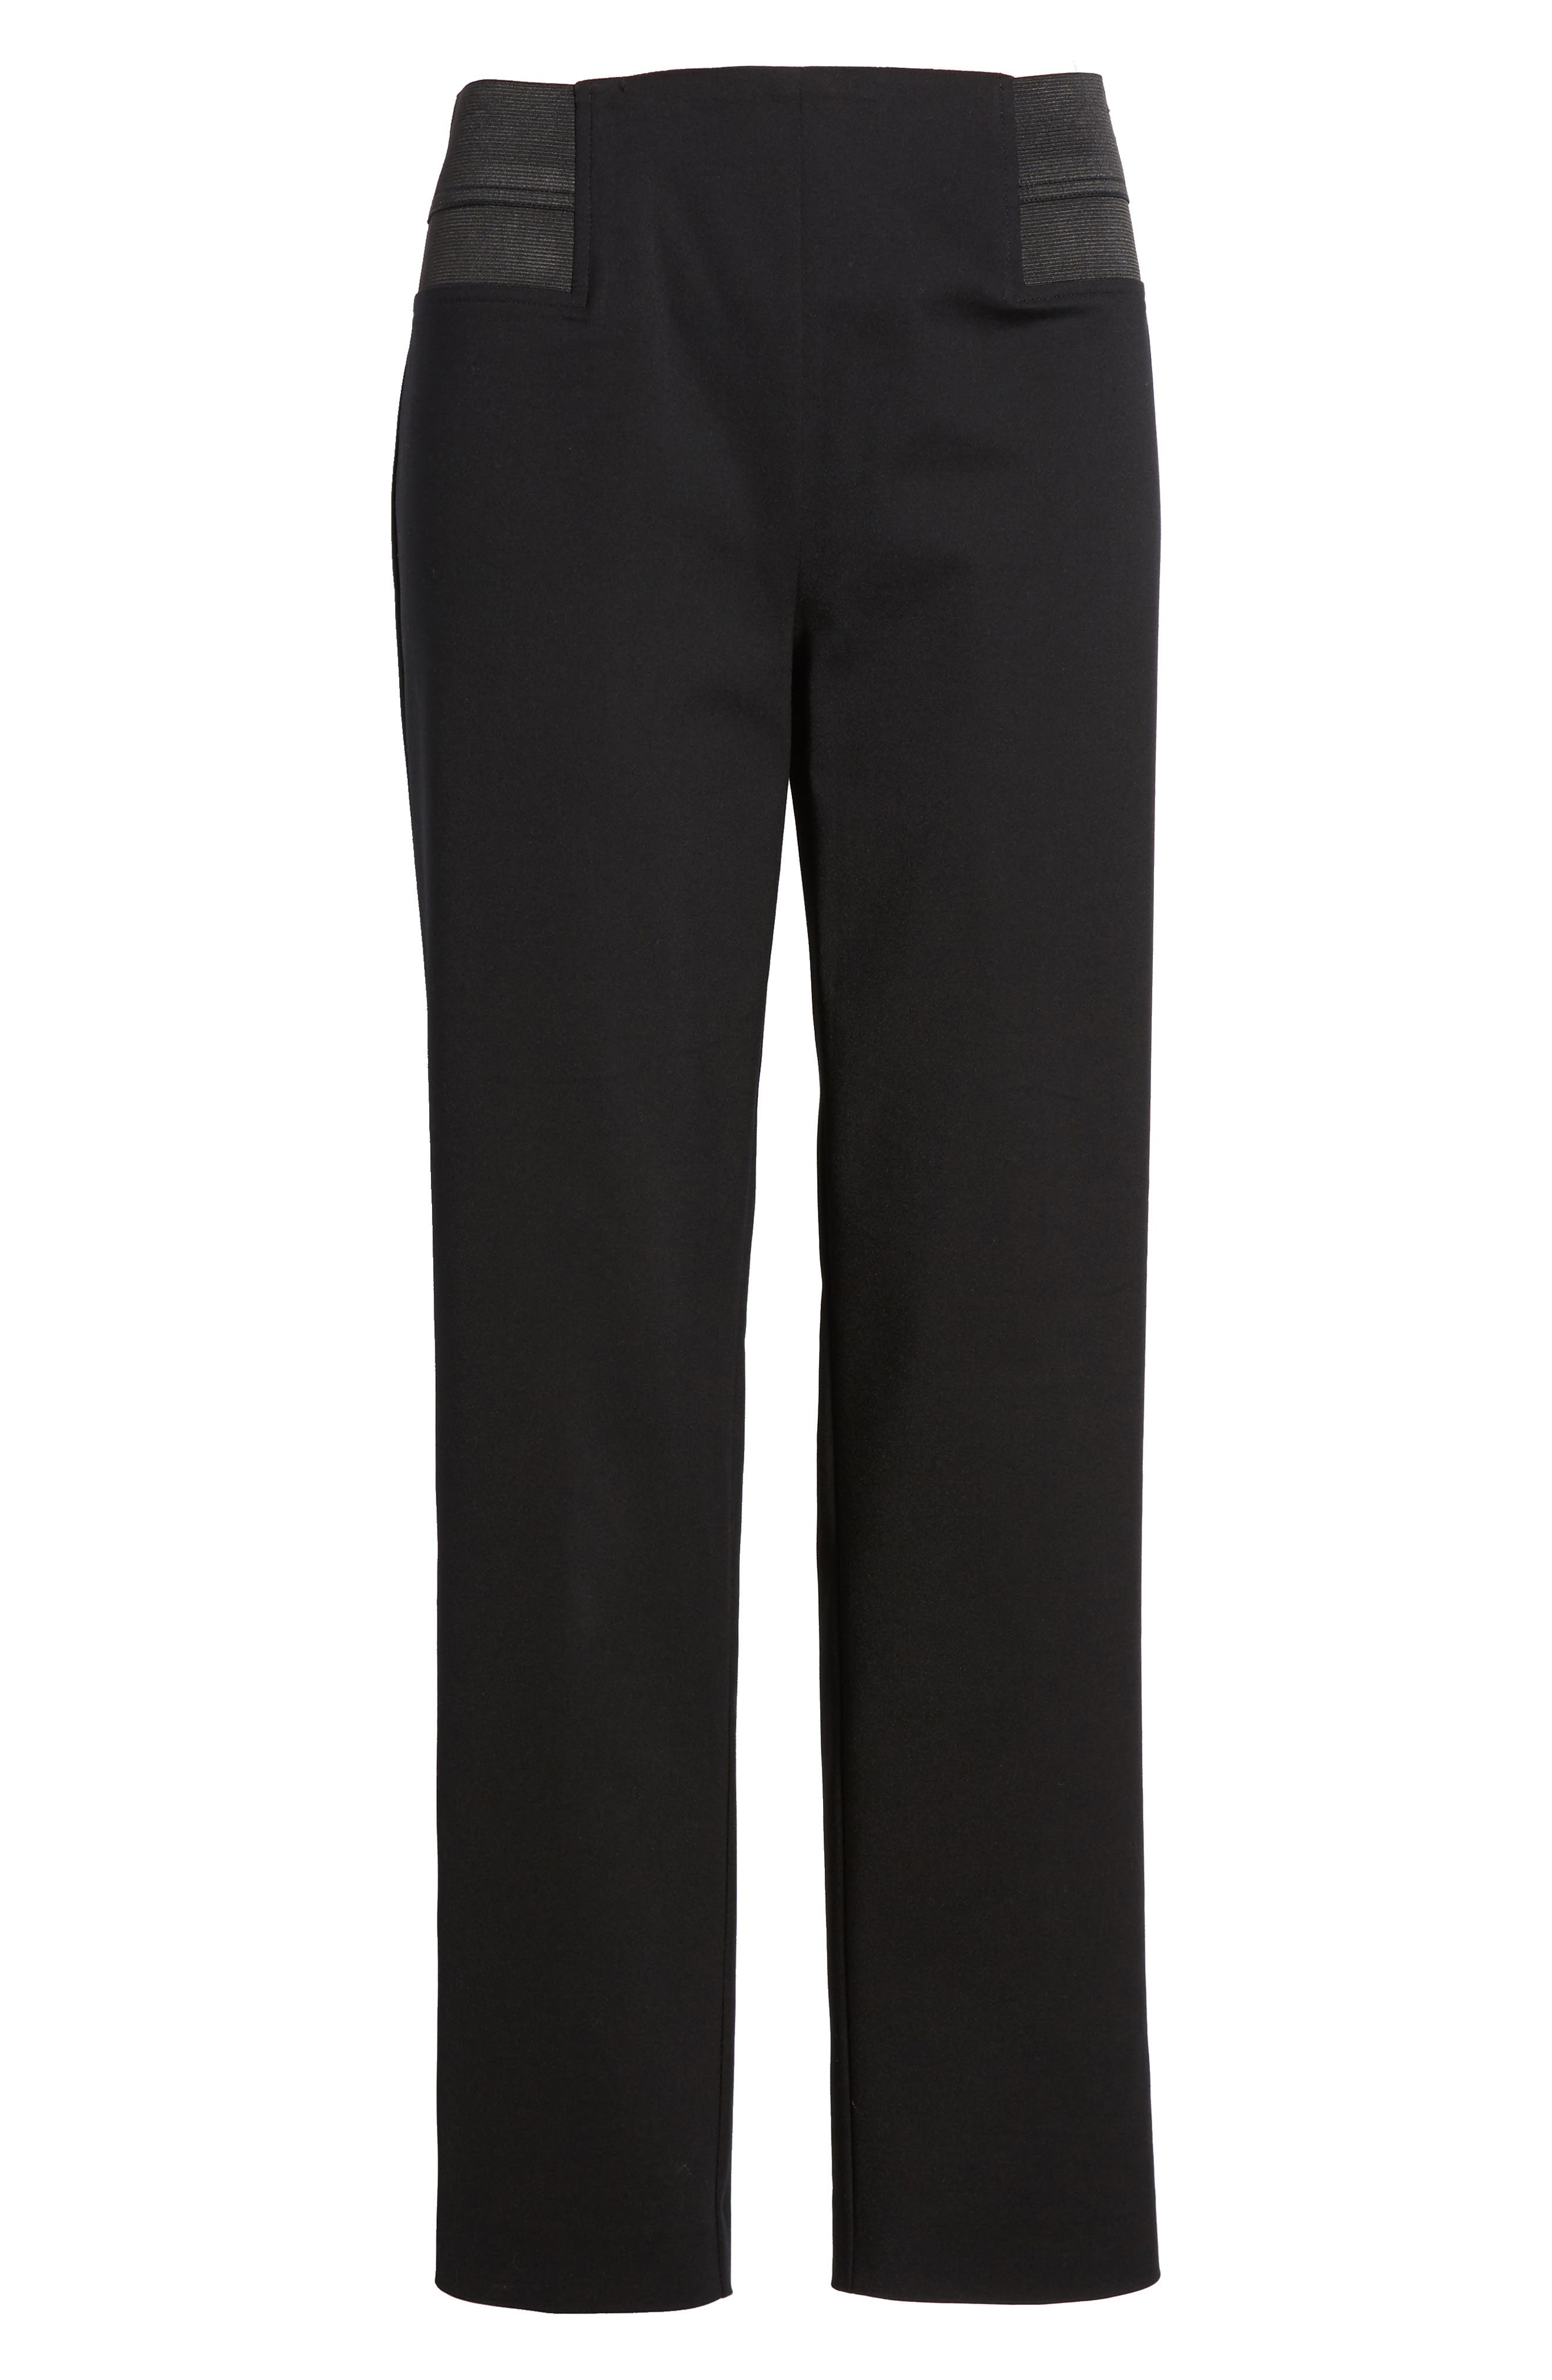 Ming Want Pull-On Ankle Pants,                             Alternate thumbnail 6, color,                             Black